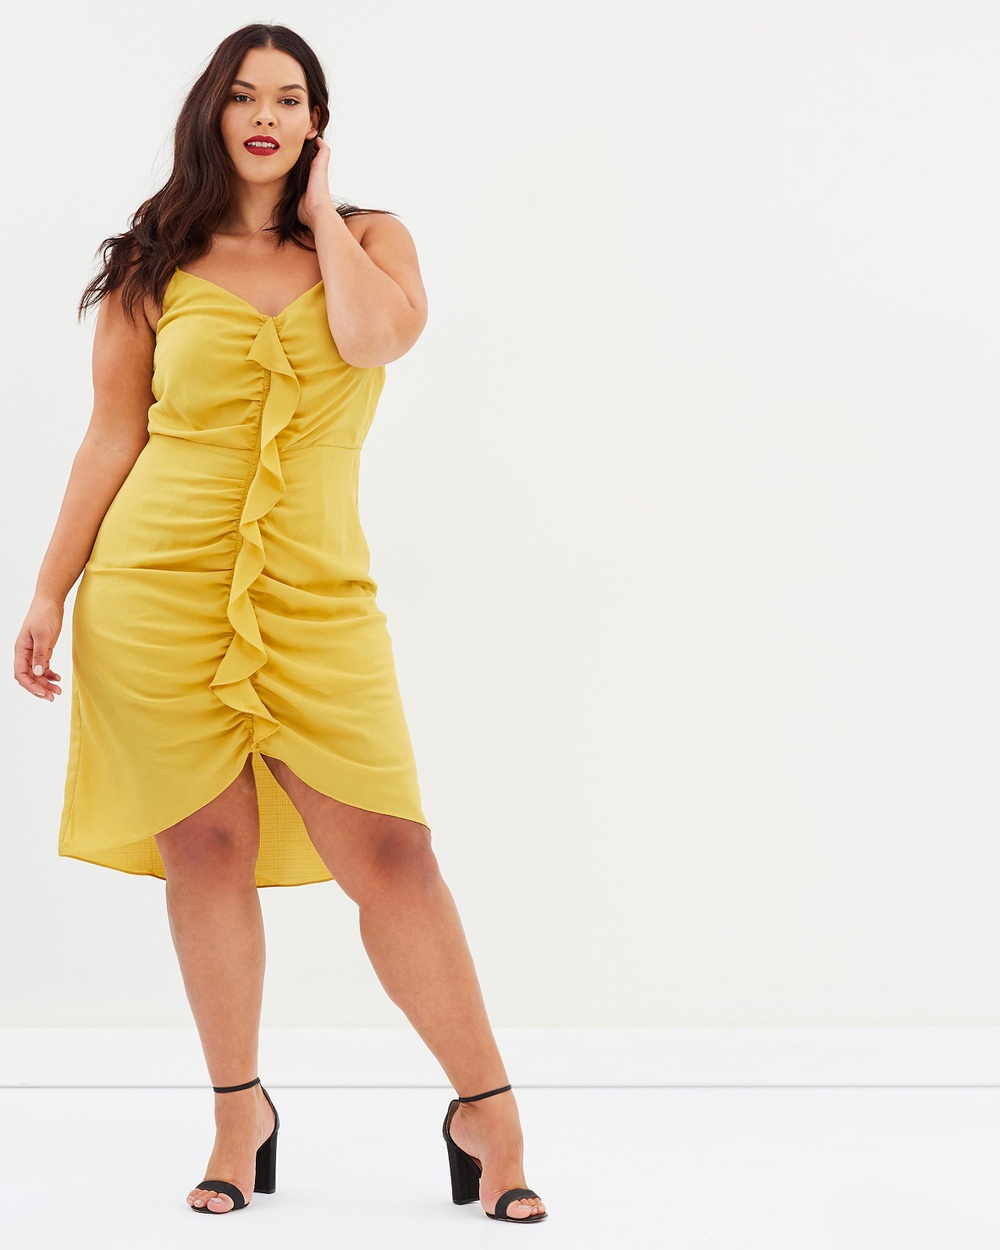 Atmos & Here Curvy ICONIC EXCLUSIVE Magnolia Gathered Frill Dress Dresses Sunflower Yellow ICONIC EXCLUSIVE Magnolia Gathered Frill Dress